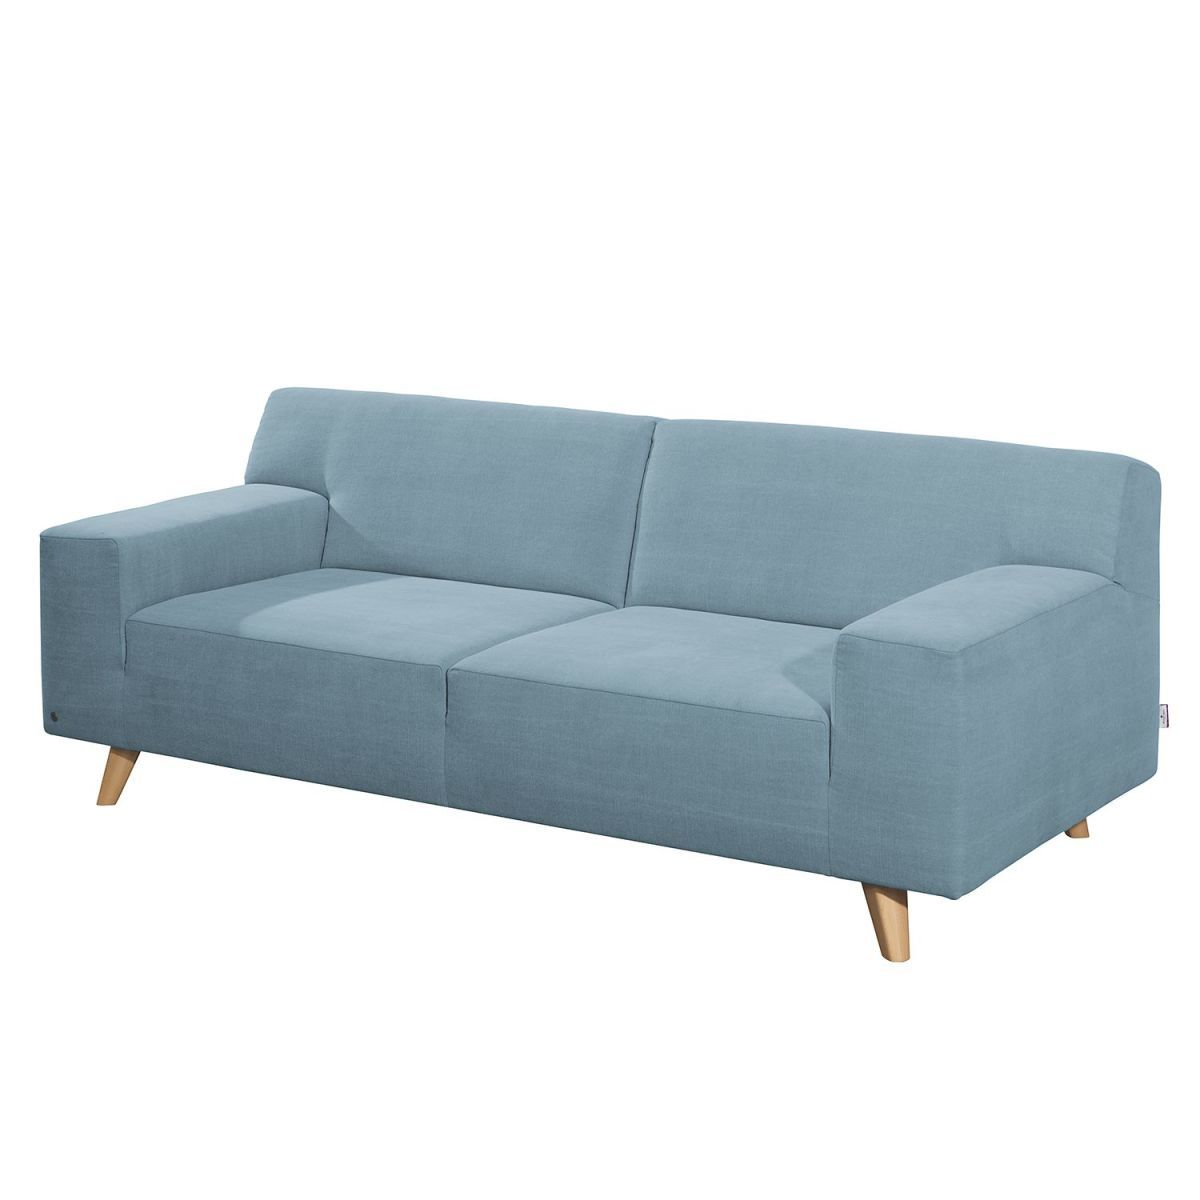 Full Size of Tom Tailor Sofa Heaven S Style Colors Otto Couch Nordic Pure Elements Casual West Coast Chic Xl Big Webstoff 2 Sitzer Stoff Tus6 Sky Blue 3er Mit Boxen Sofa Sofa Tom Tailor